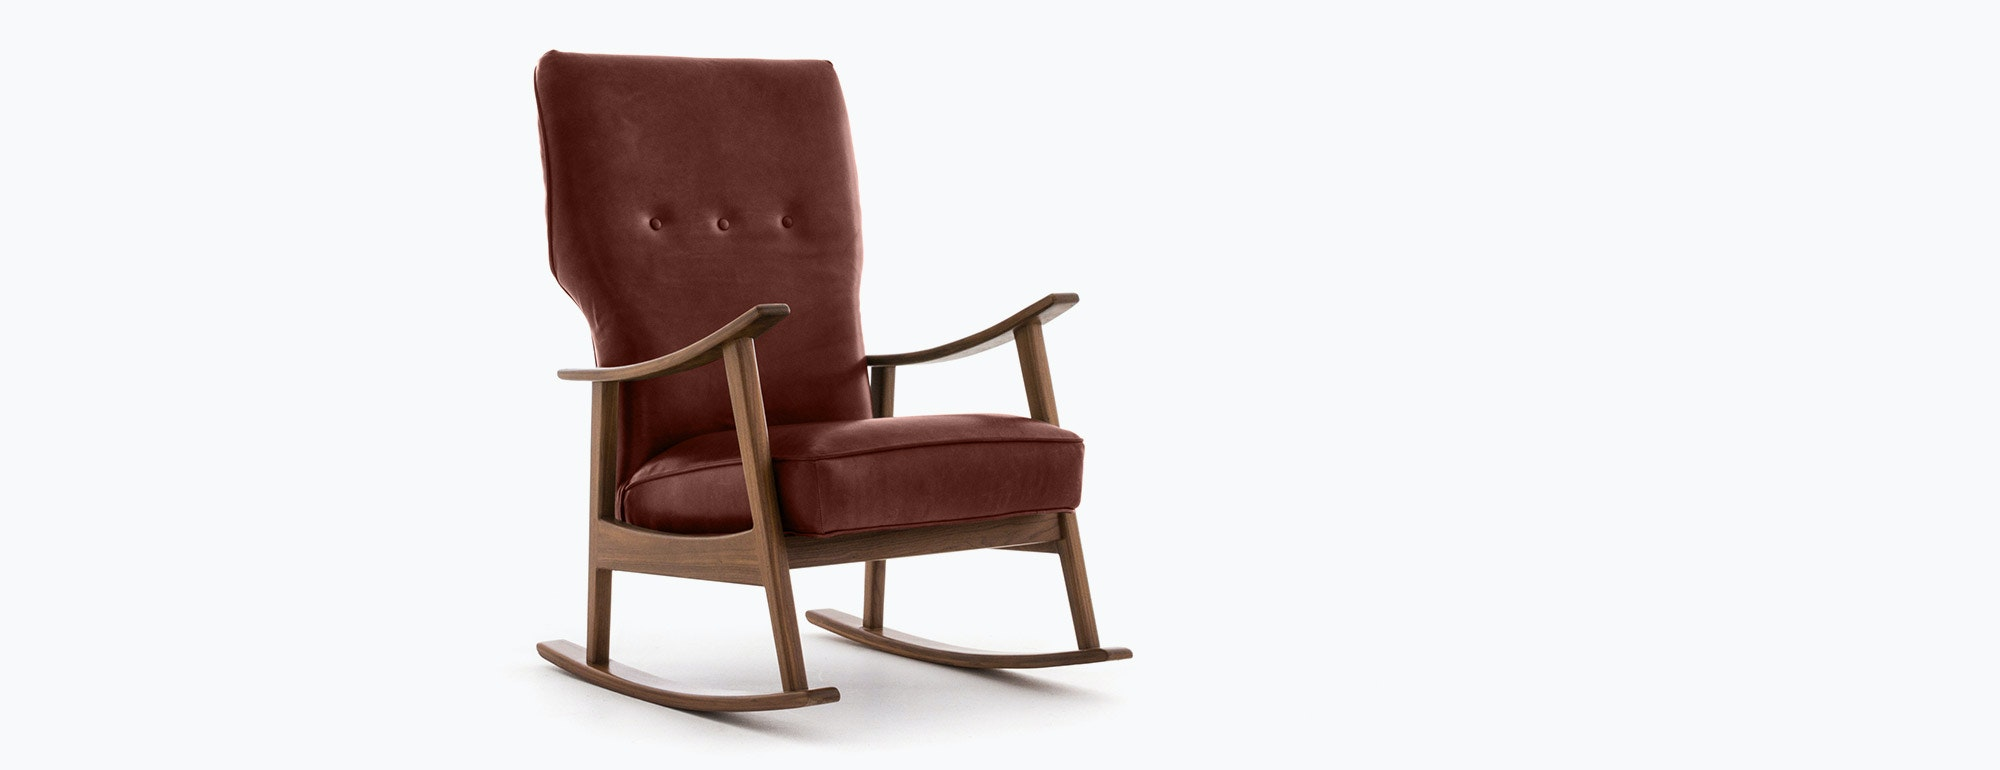 Keyser leather rocking chair joybird